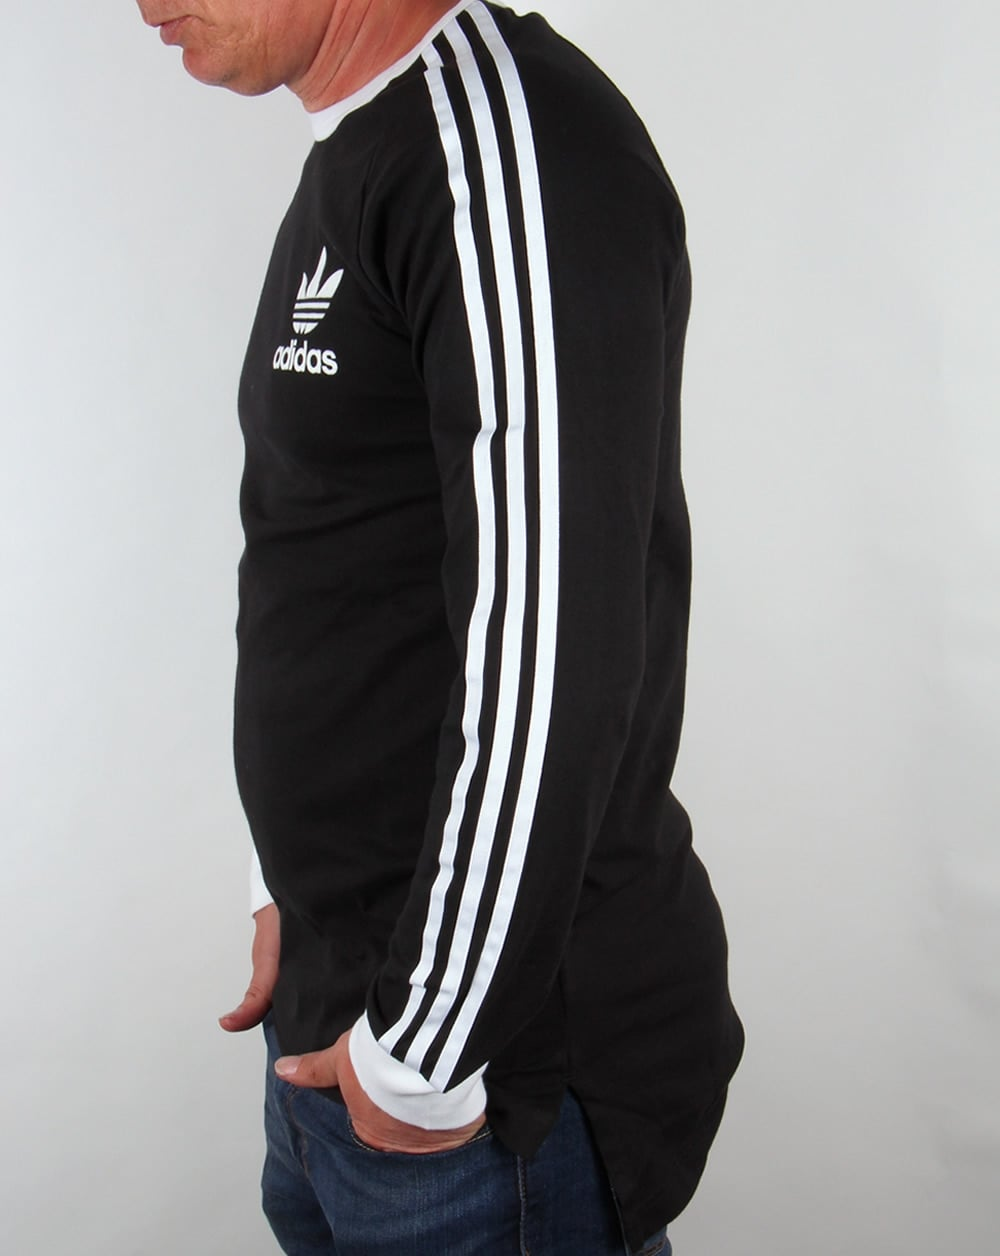 Adidas t shirt black white - Adidas Originals Adicolour Long Sleeve T Shirt Black White